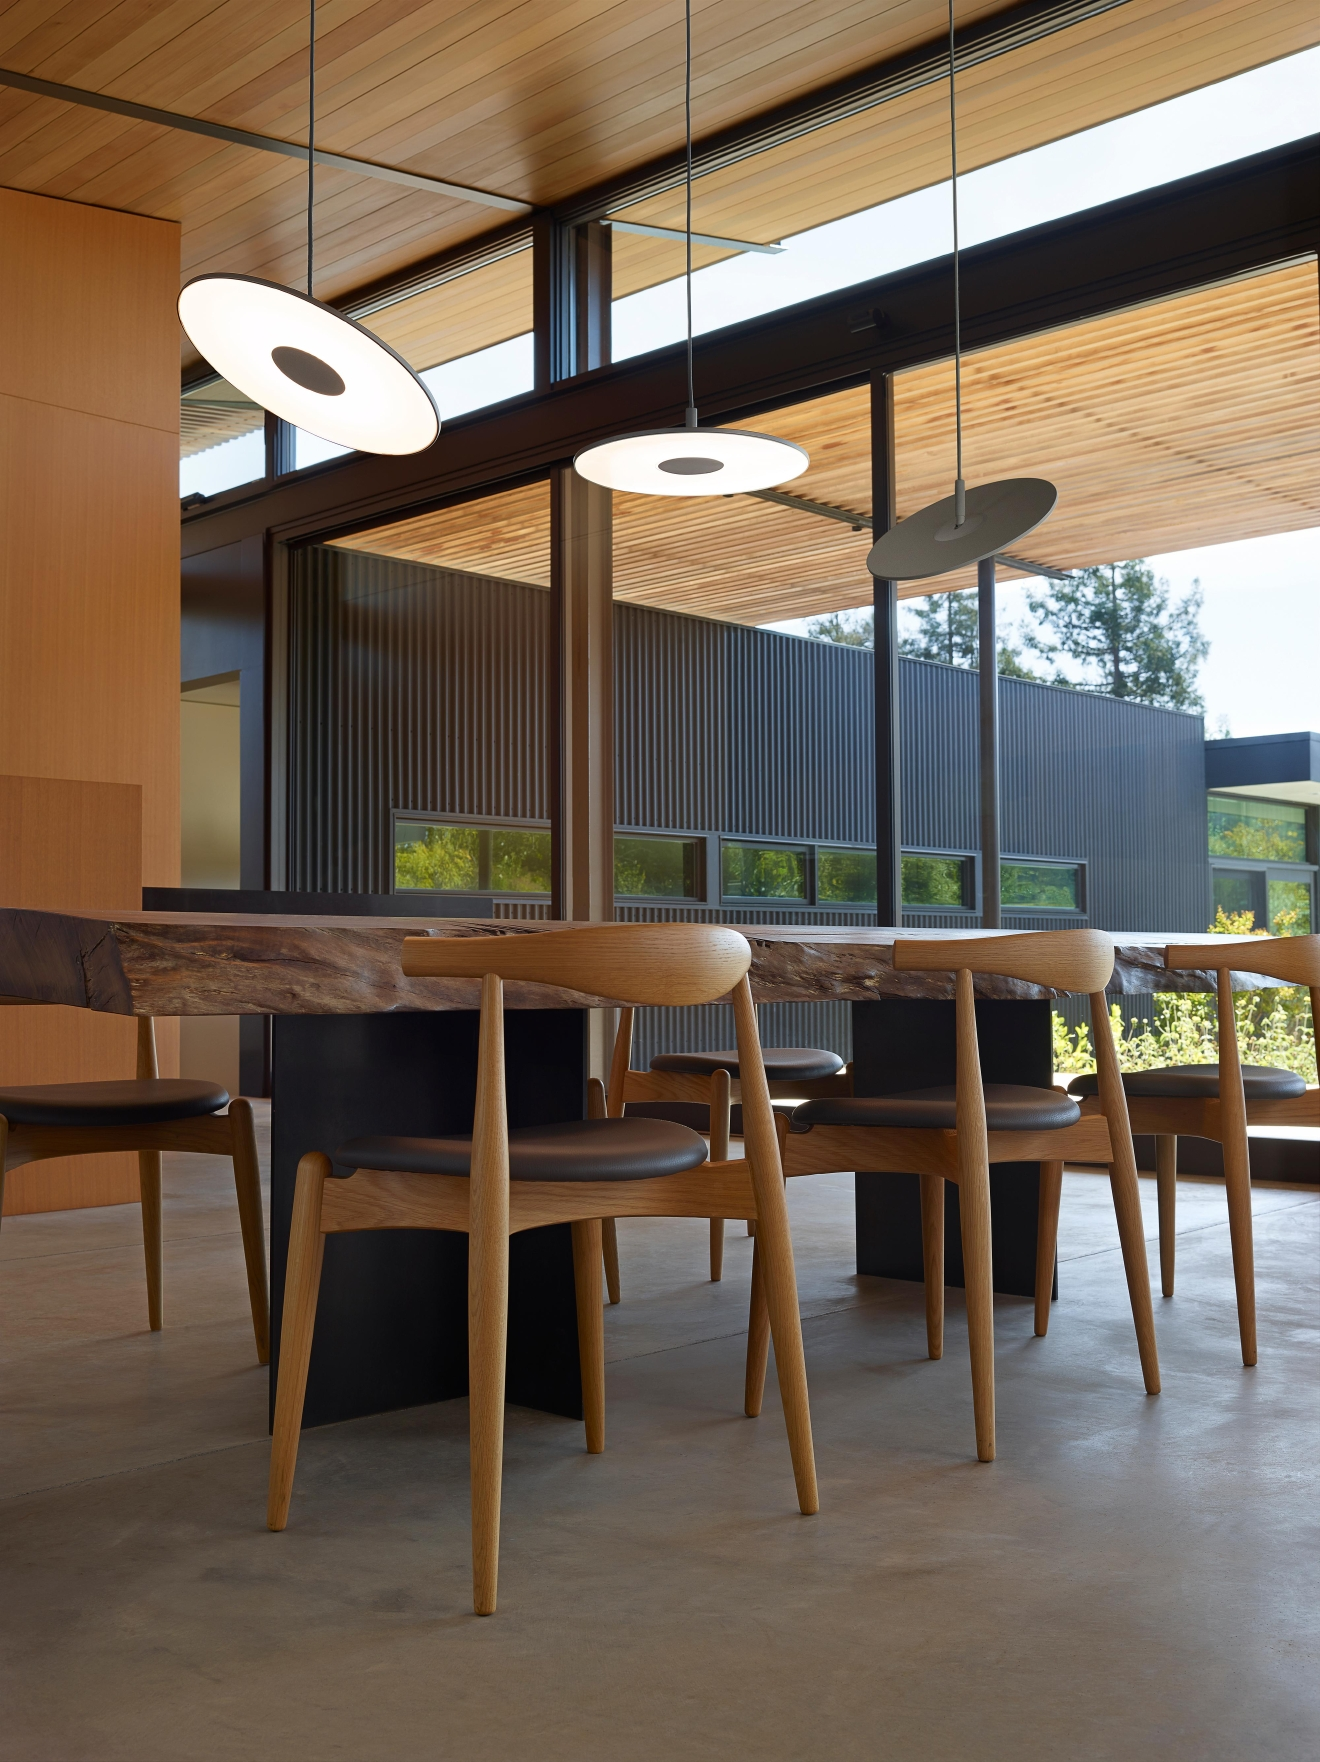 Hanging lights draw the eye upward and leave valuable table and floor space open for use.